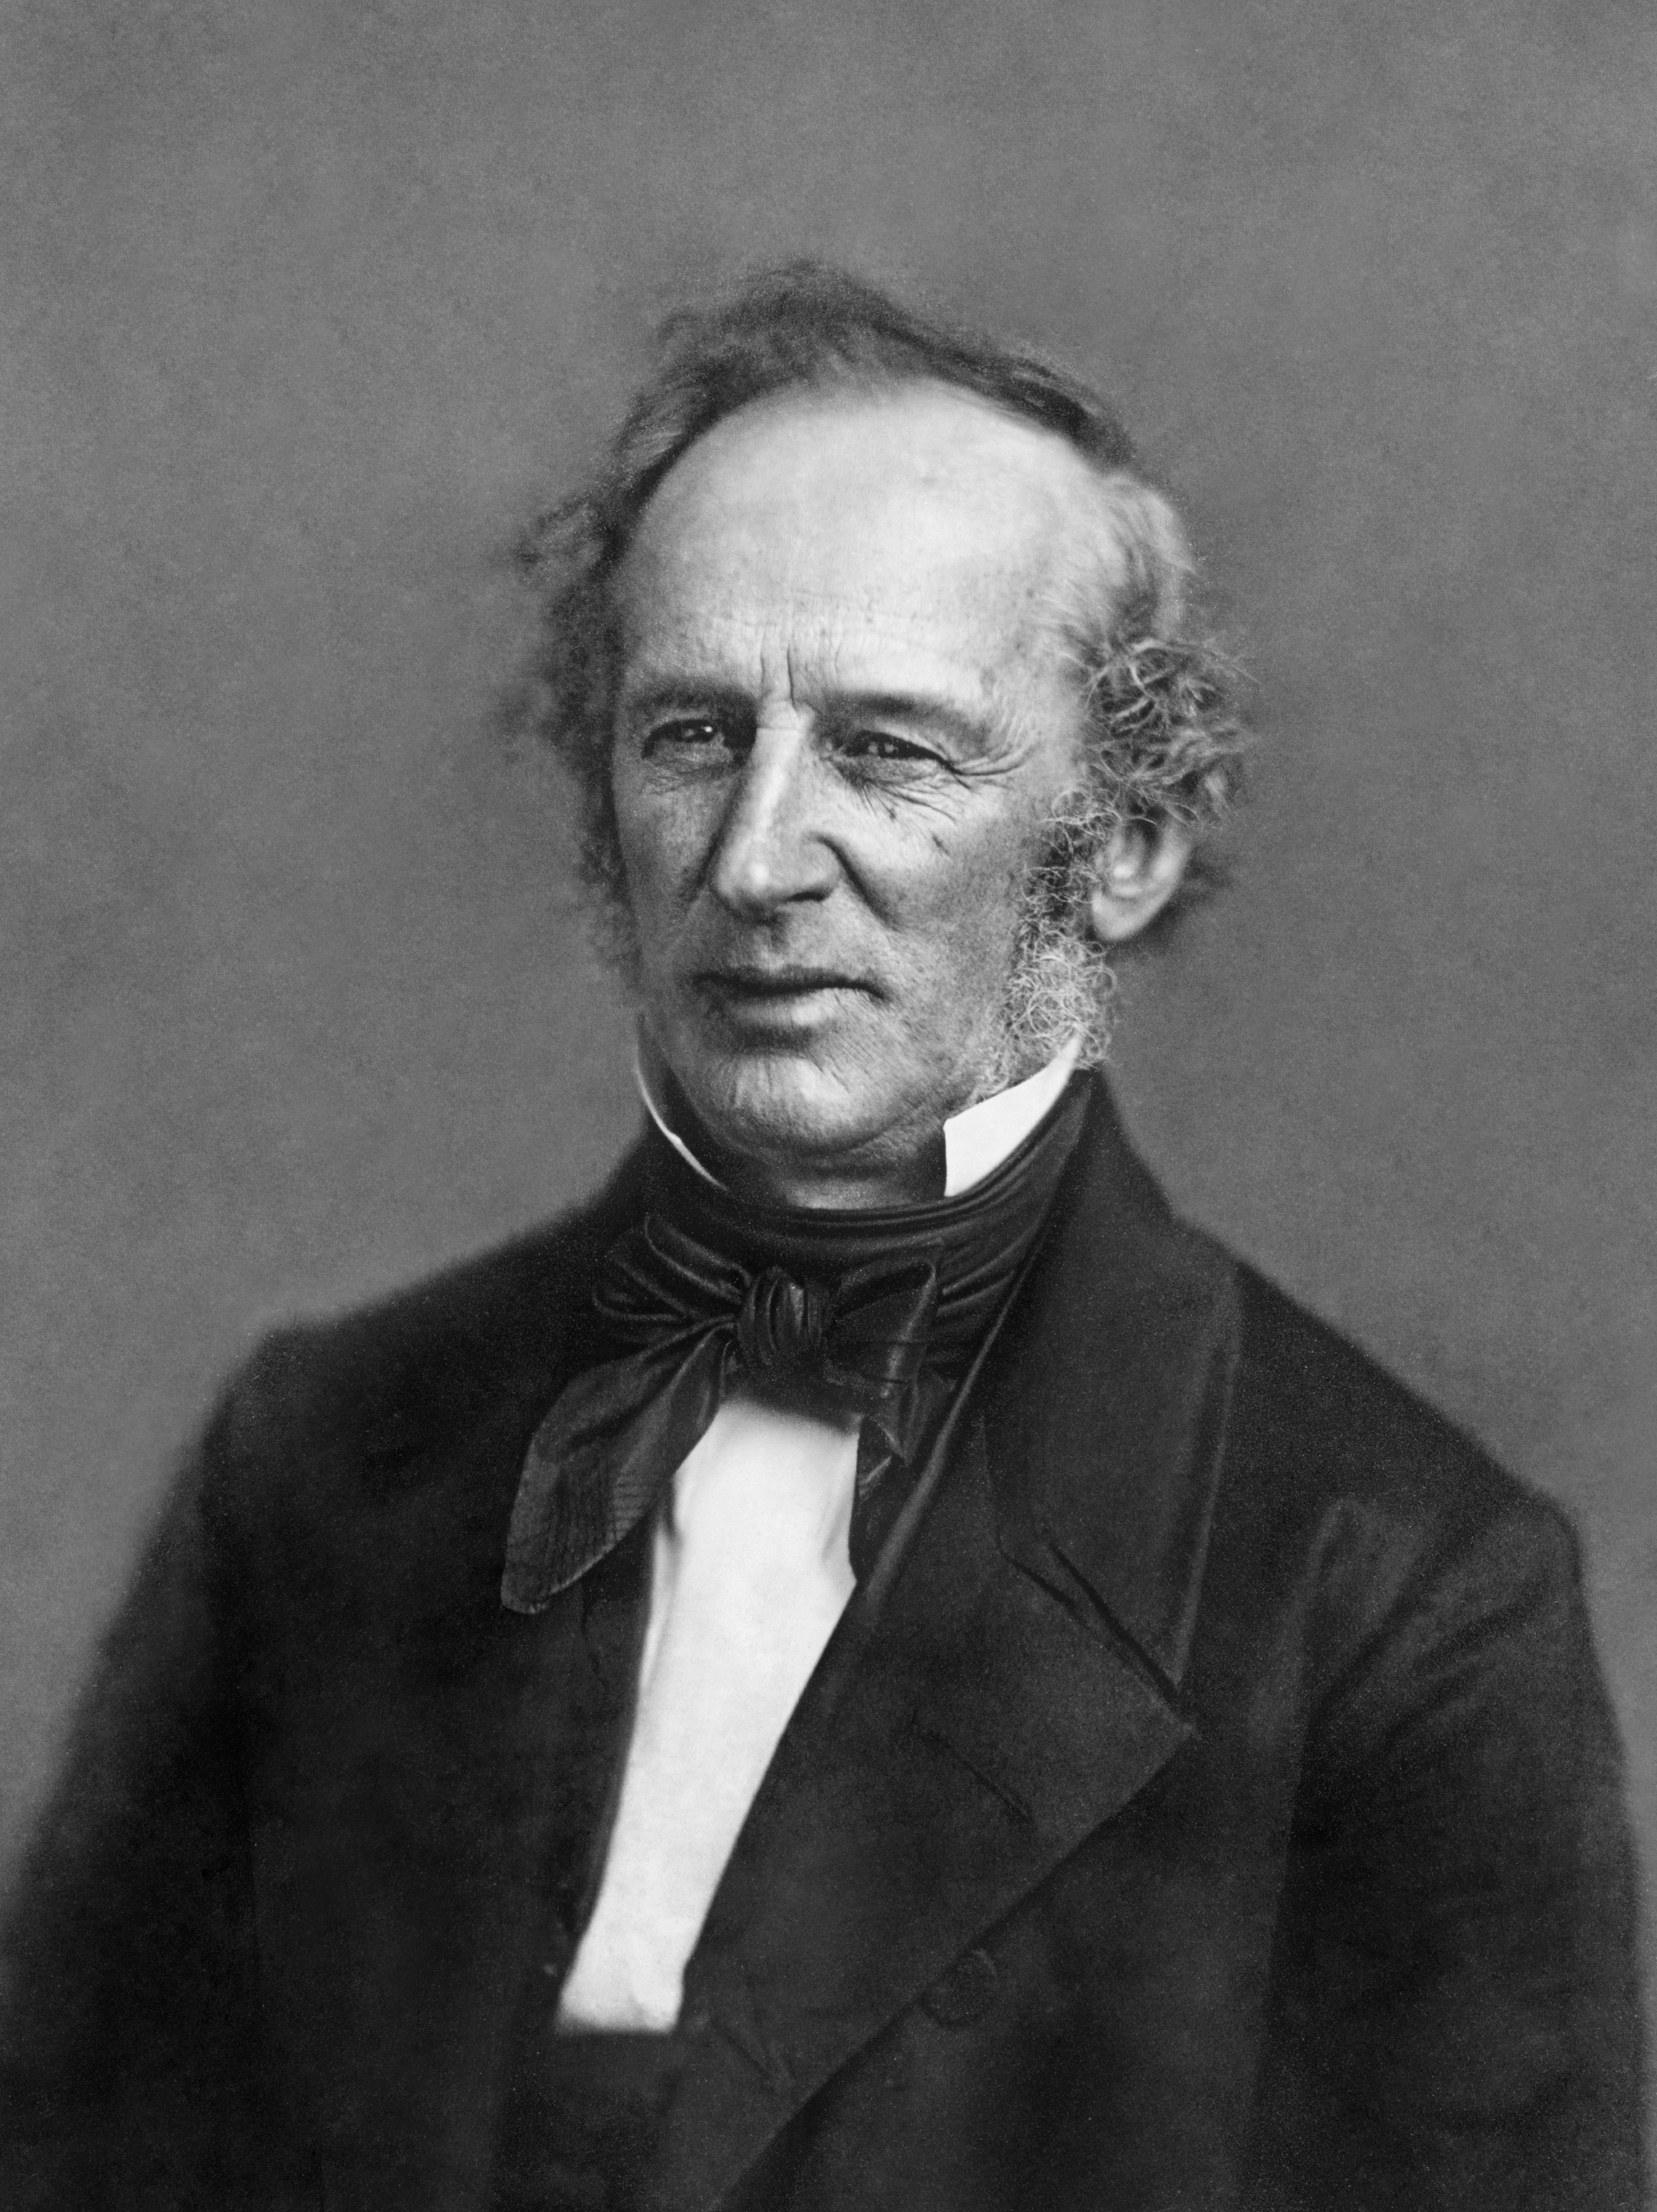 https://upload.wikimedia.org/wikipedia/commons/5/57/Cornelius_Vanderbilt_Daguerrotype2.jpg